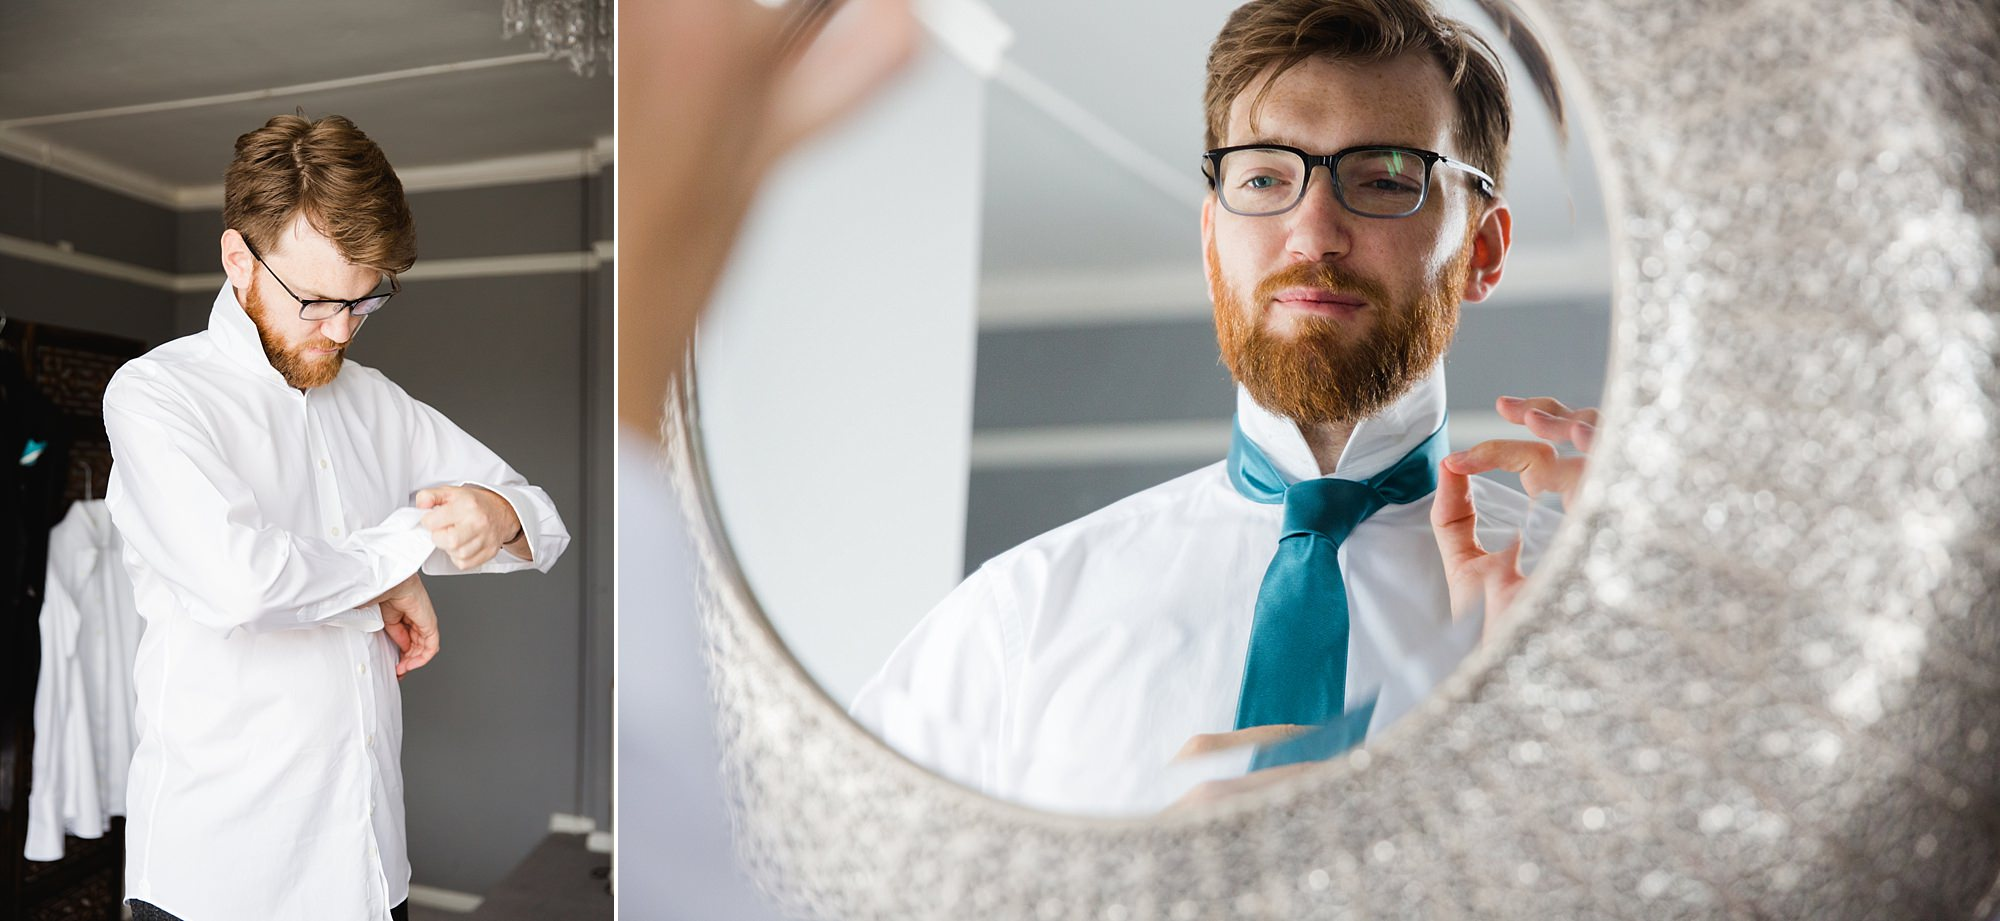 Beacon House wedding portrait of groom adjusting his tie in mirror